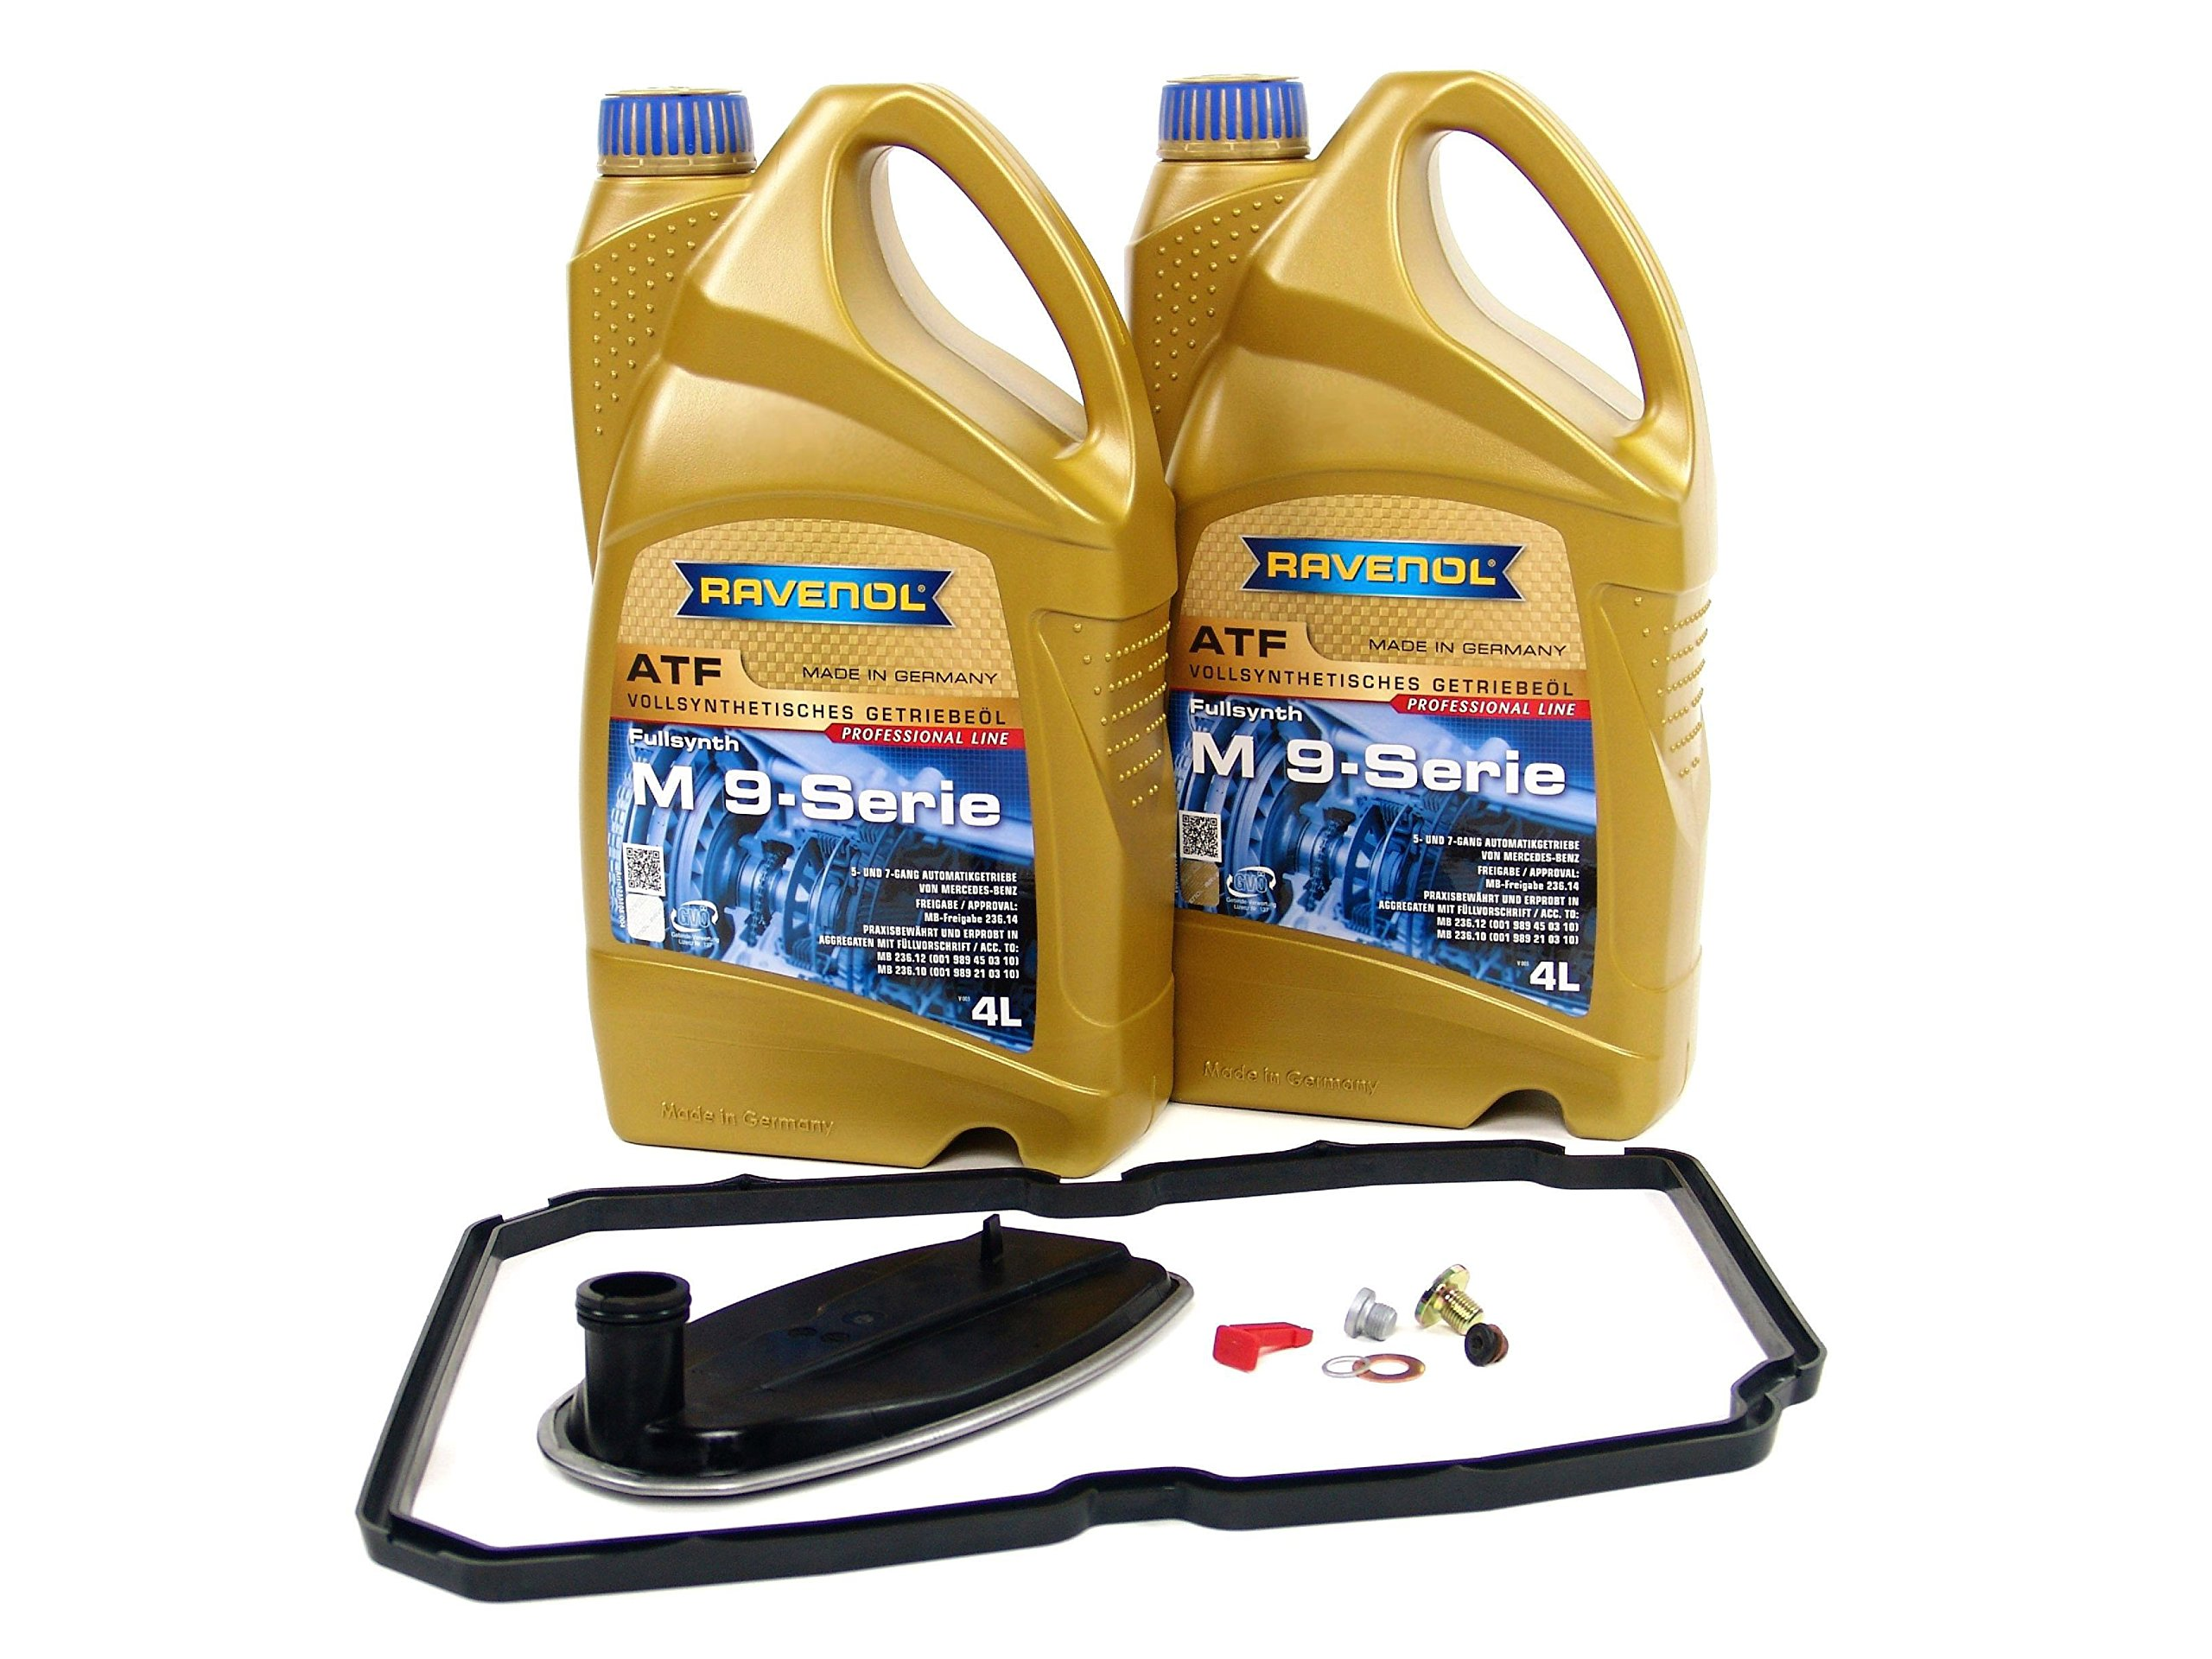 BLAU F2A1541-N Mercedes SLK230, SLK32 AMG, SLK320 ATF Transmission Fluid Filter Change Kit - 1998-04 - 5 Spd MB 236.14 by Blau